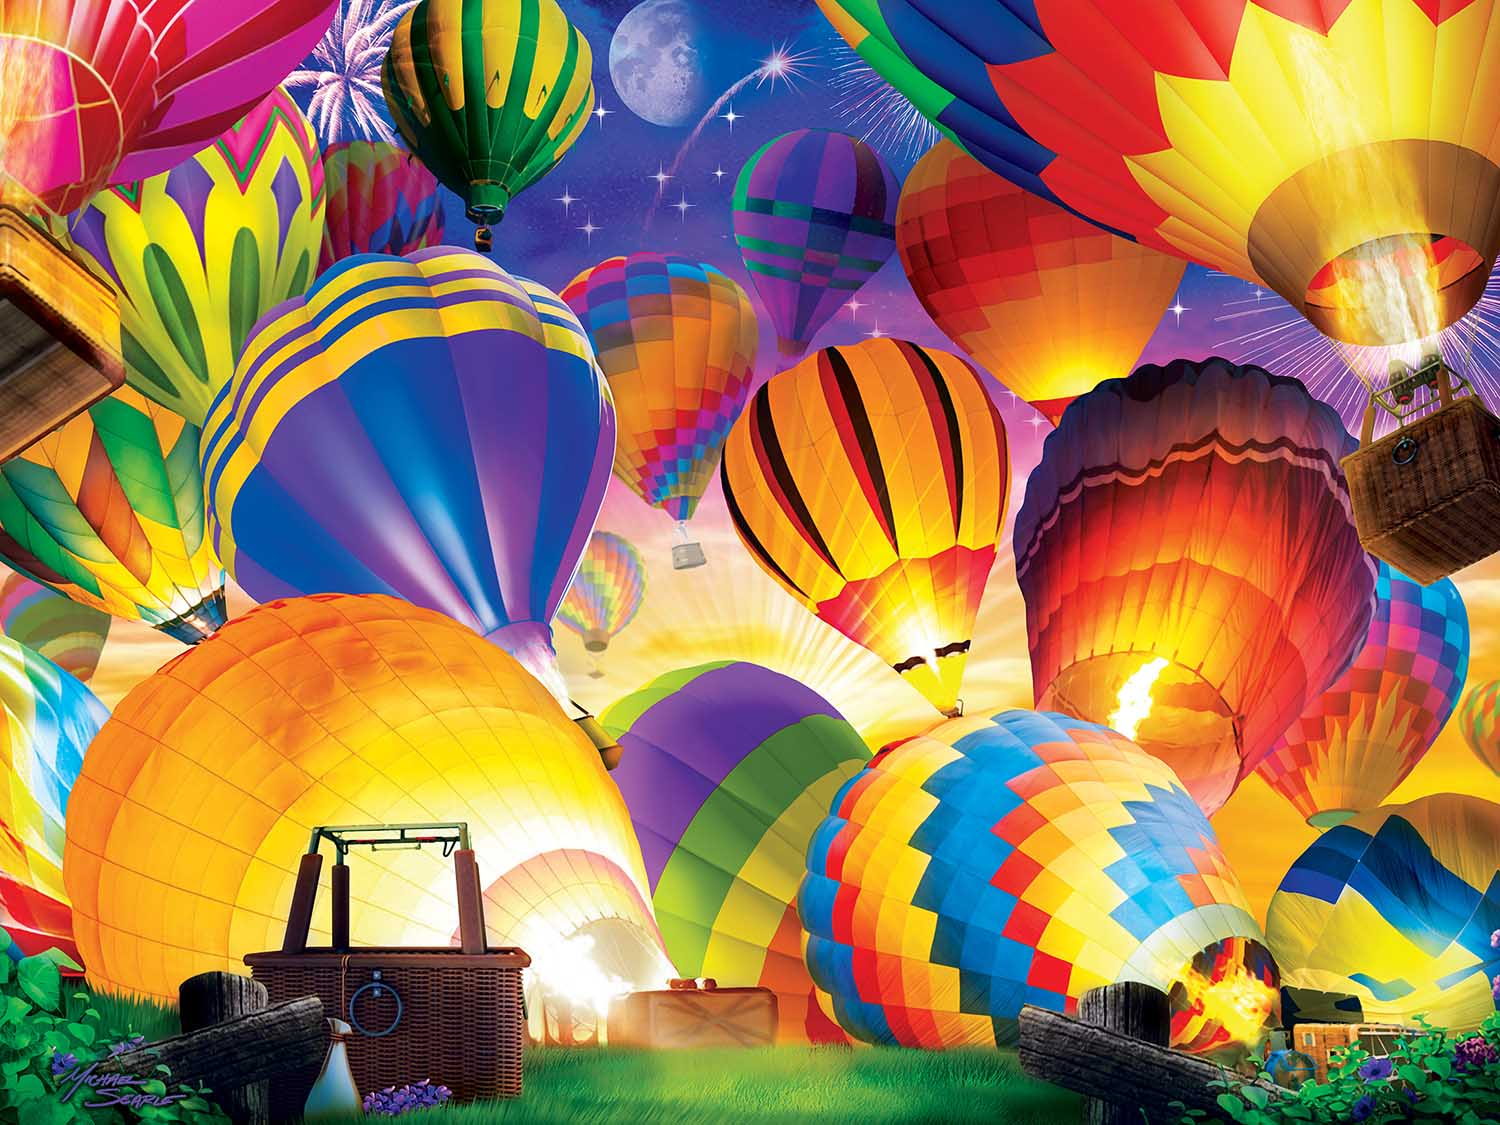 Taking Flight Balloons Glow in the Dark Puzzle